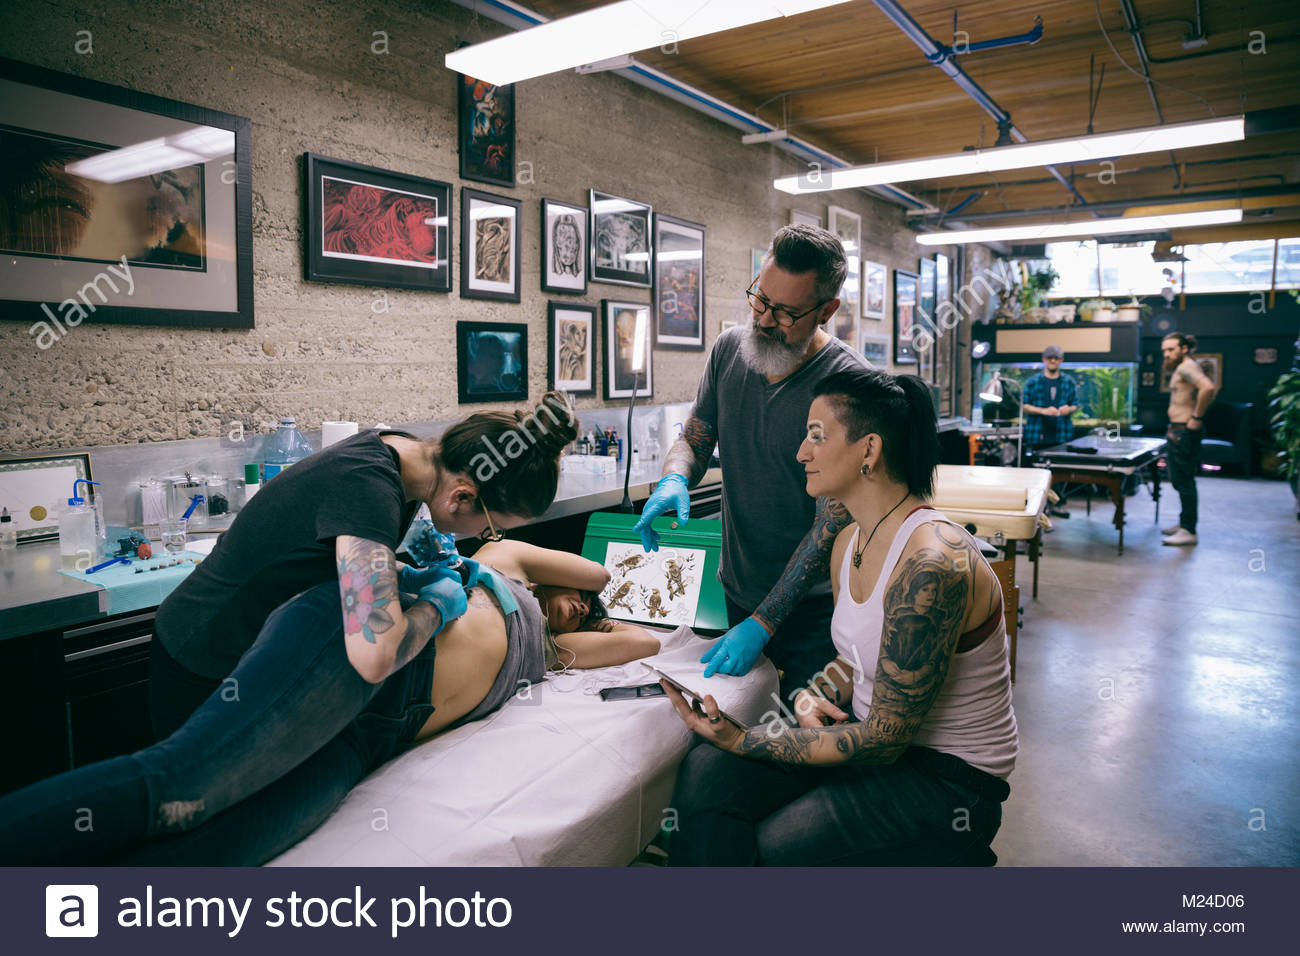 Tattoo artists and client tattooing side of client in tattoo studio - Stock Image